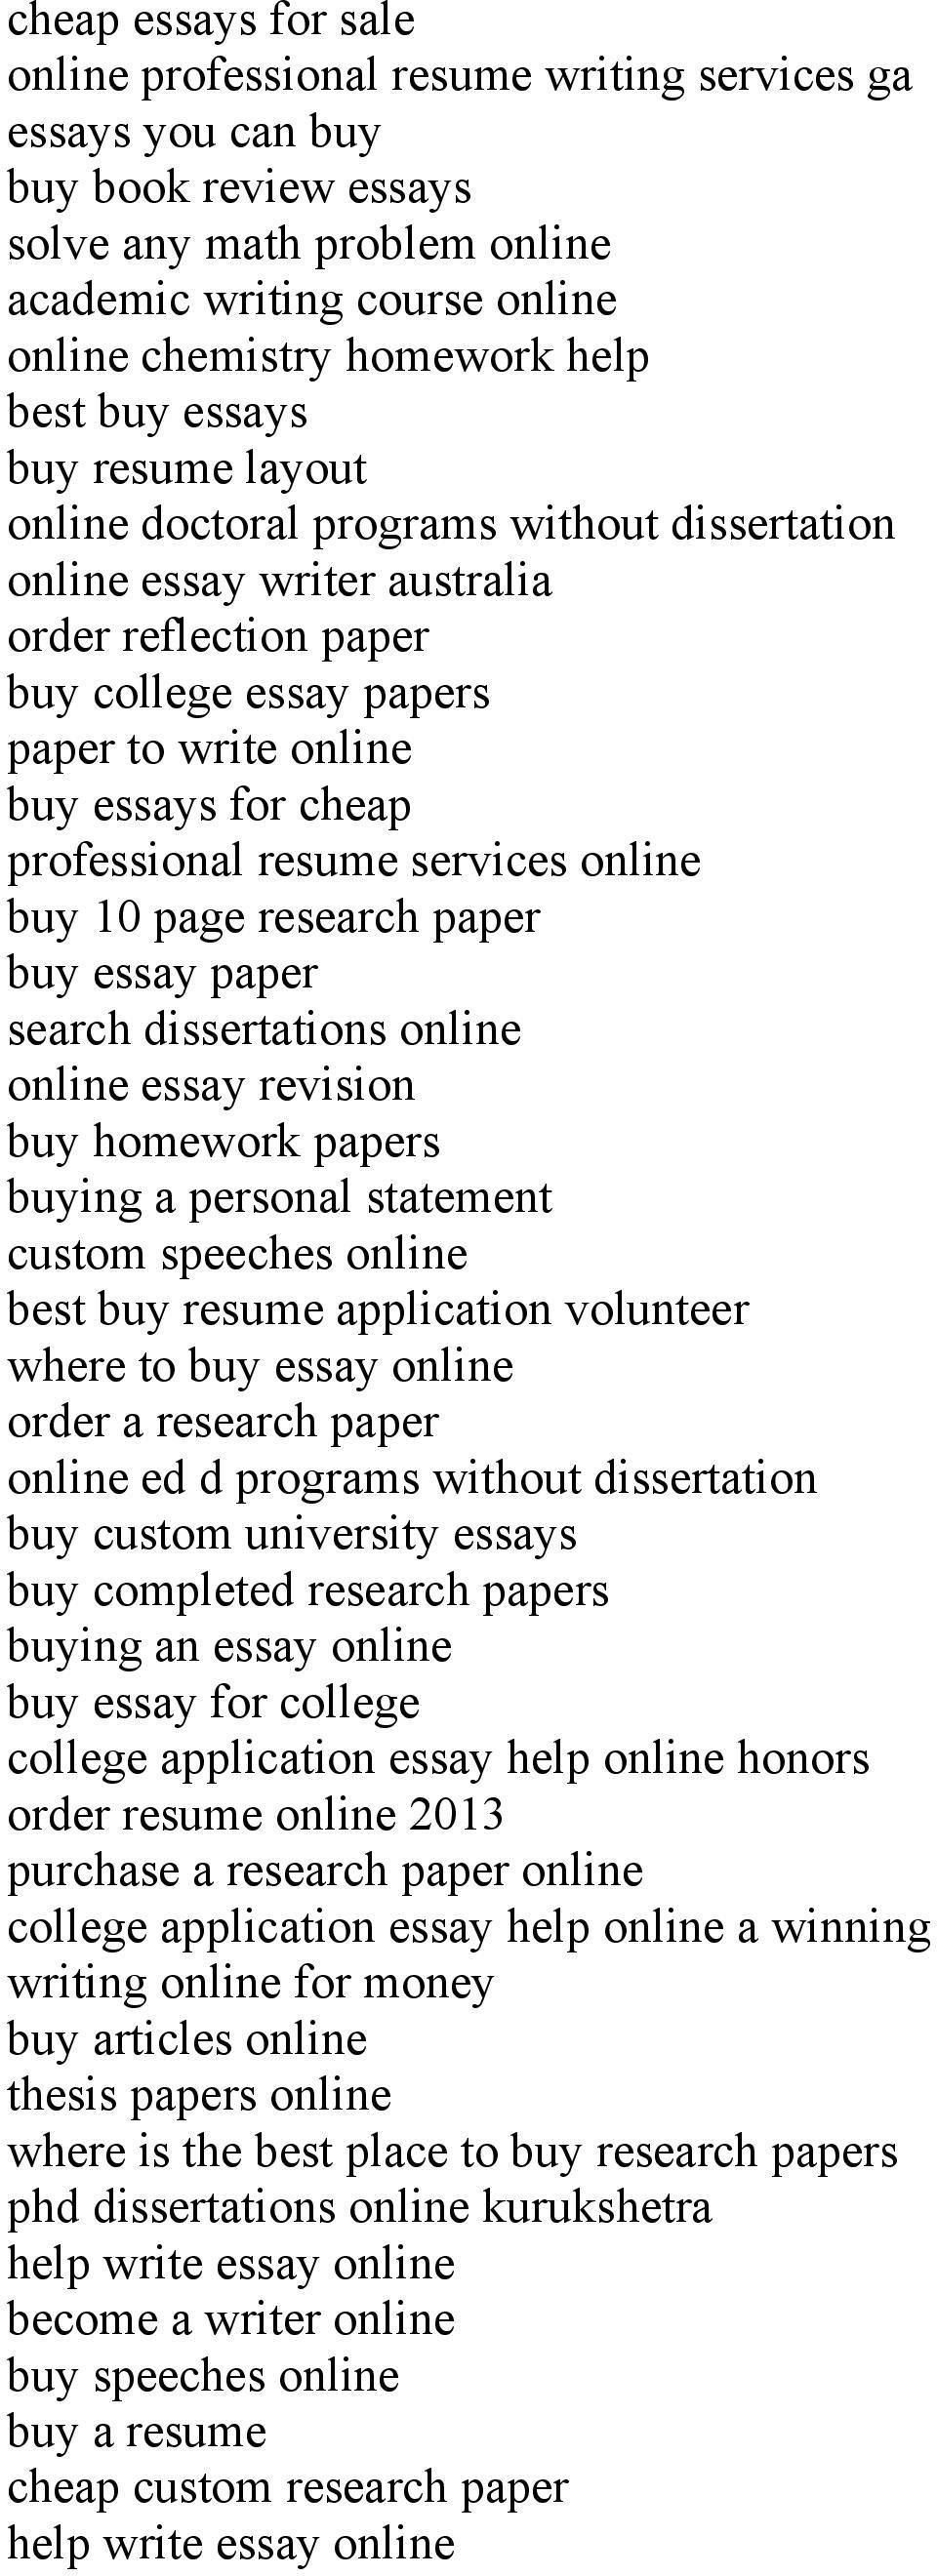 cheap professional resume services online buy 10 page research paper buy essay paper search dissertations online online essay revision buy homework papers buying a personal statement custom speeches